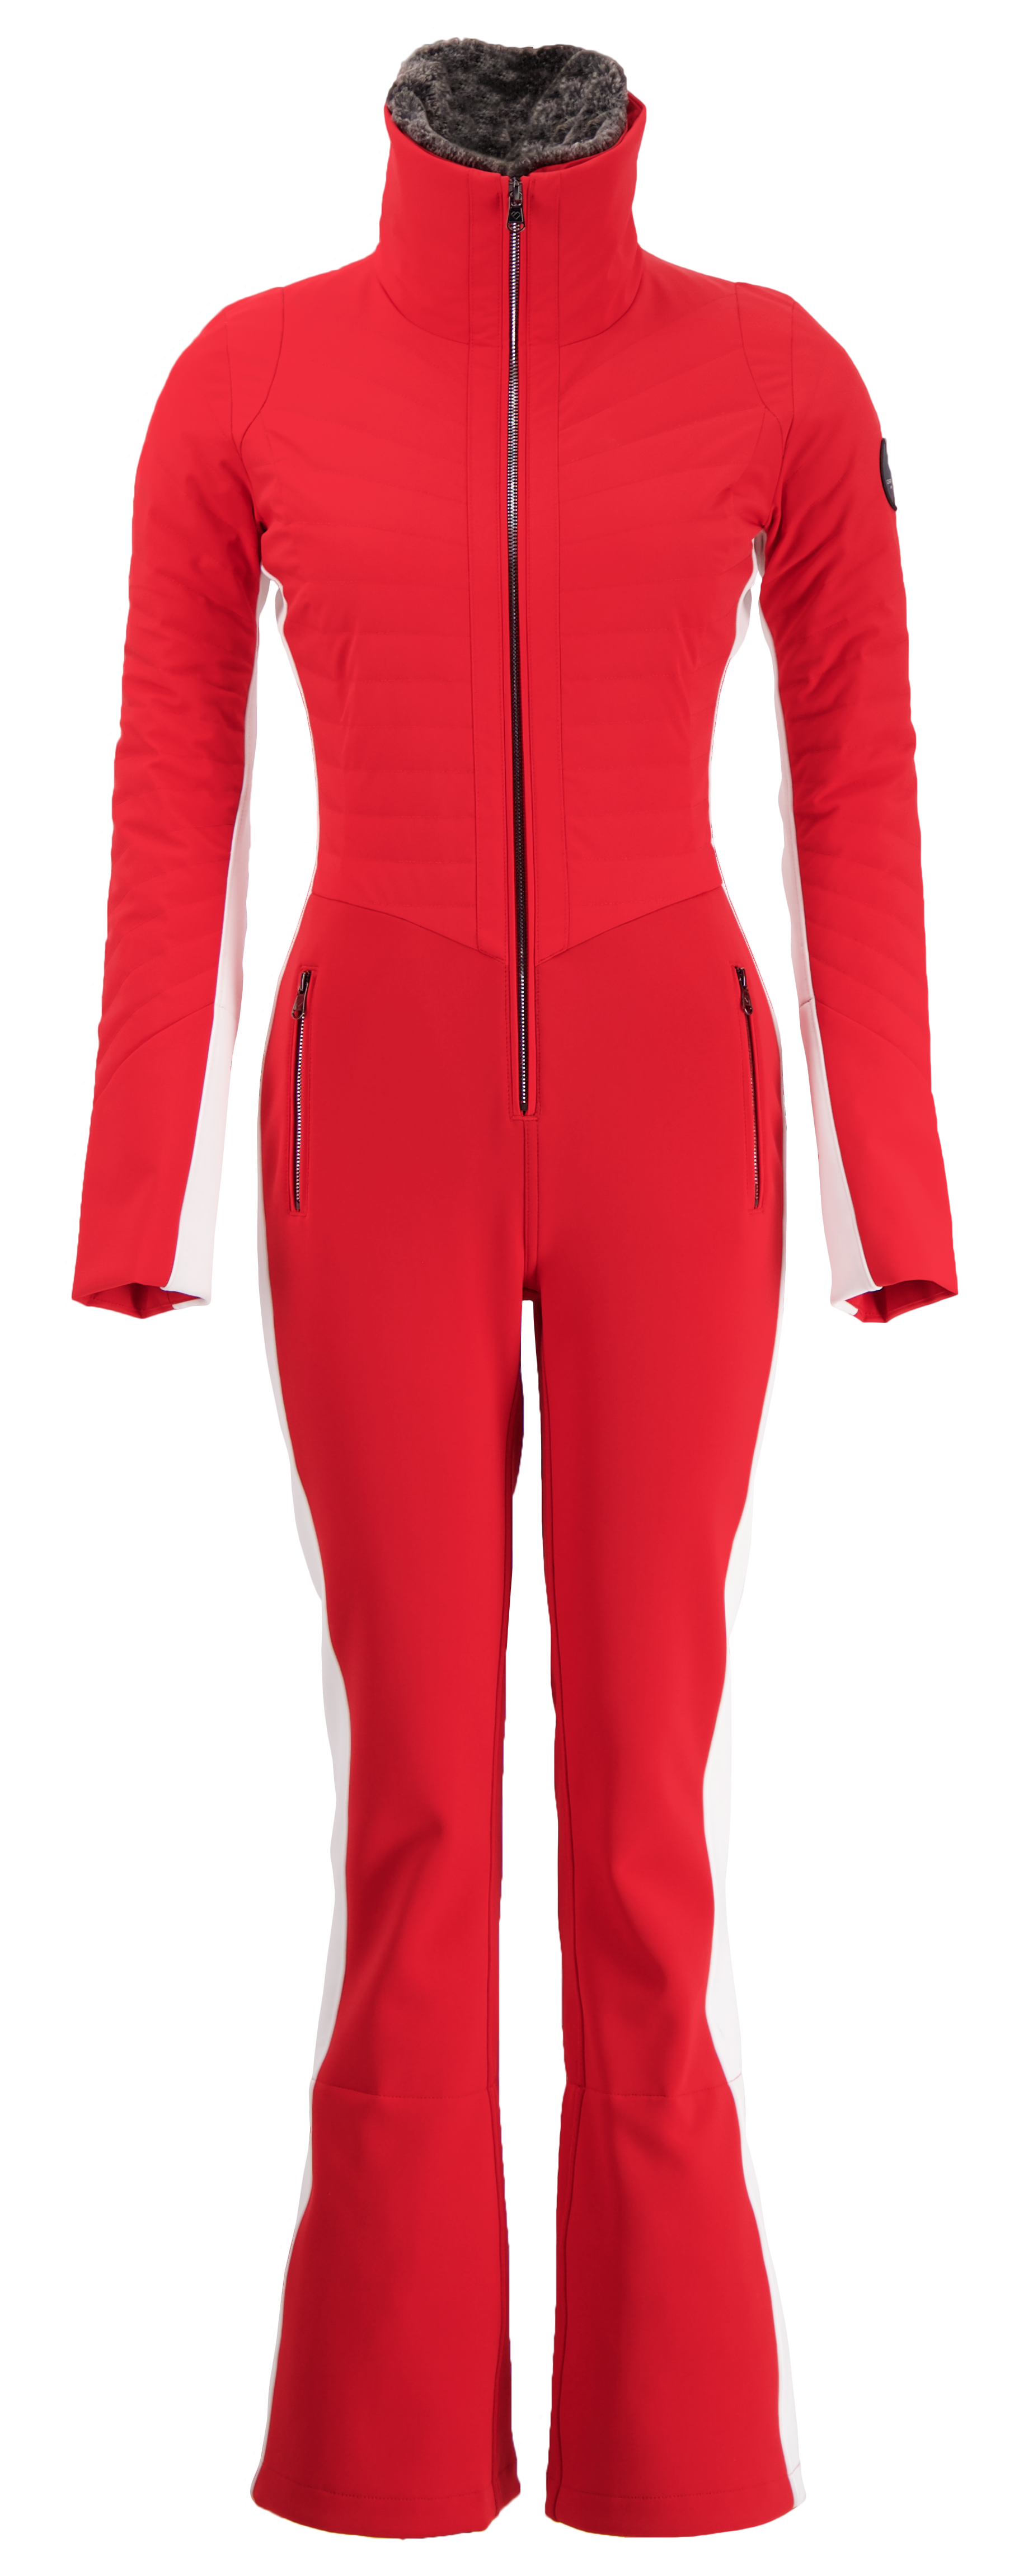 NEW Patagonia Capilene 4 Expedition-Weight One-Piece Suit